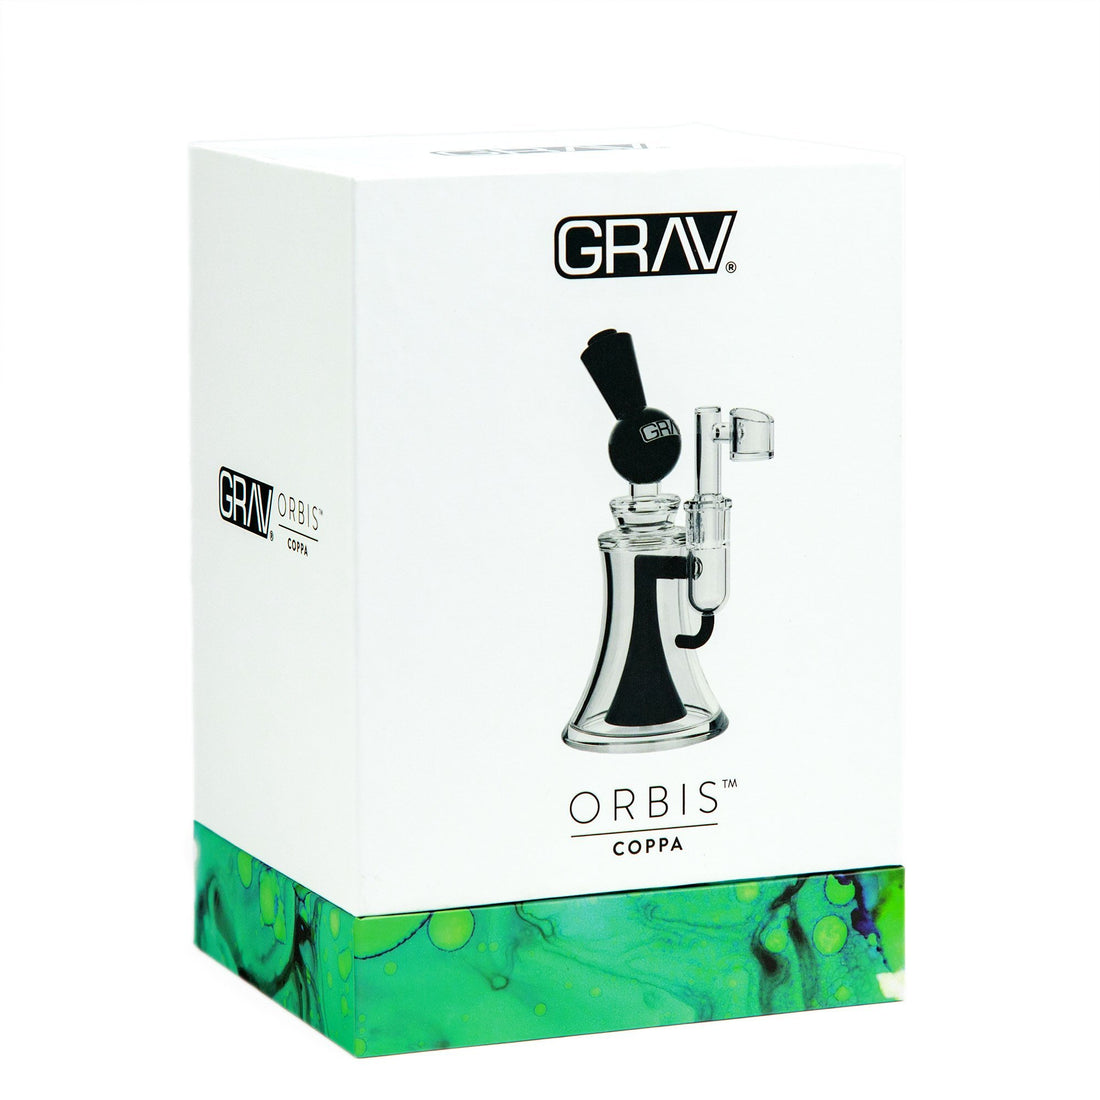 GRAV Orbis Coppa - 420 Science - The most trusted online smoke shop.